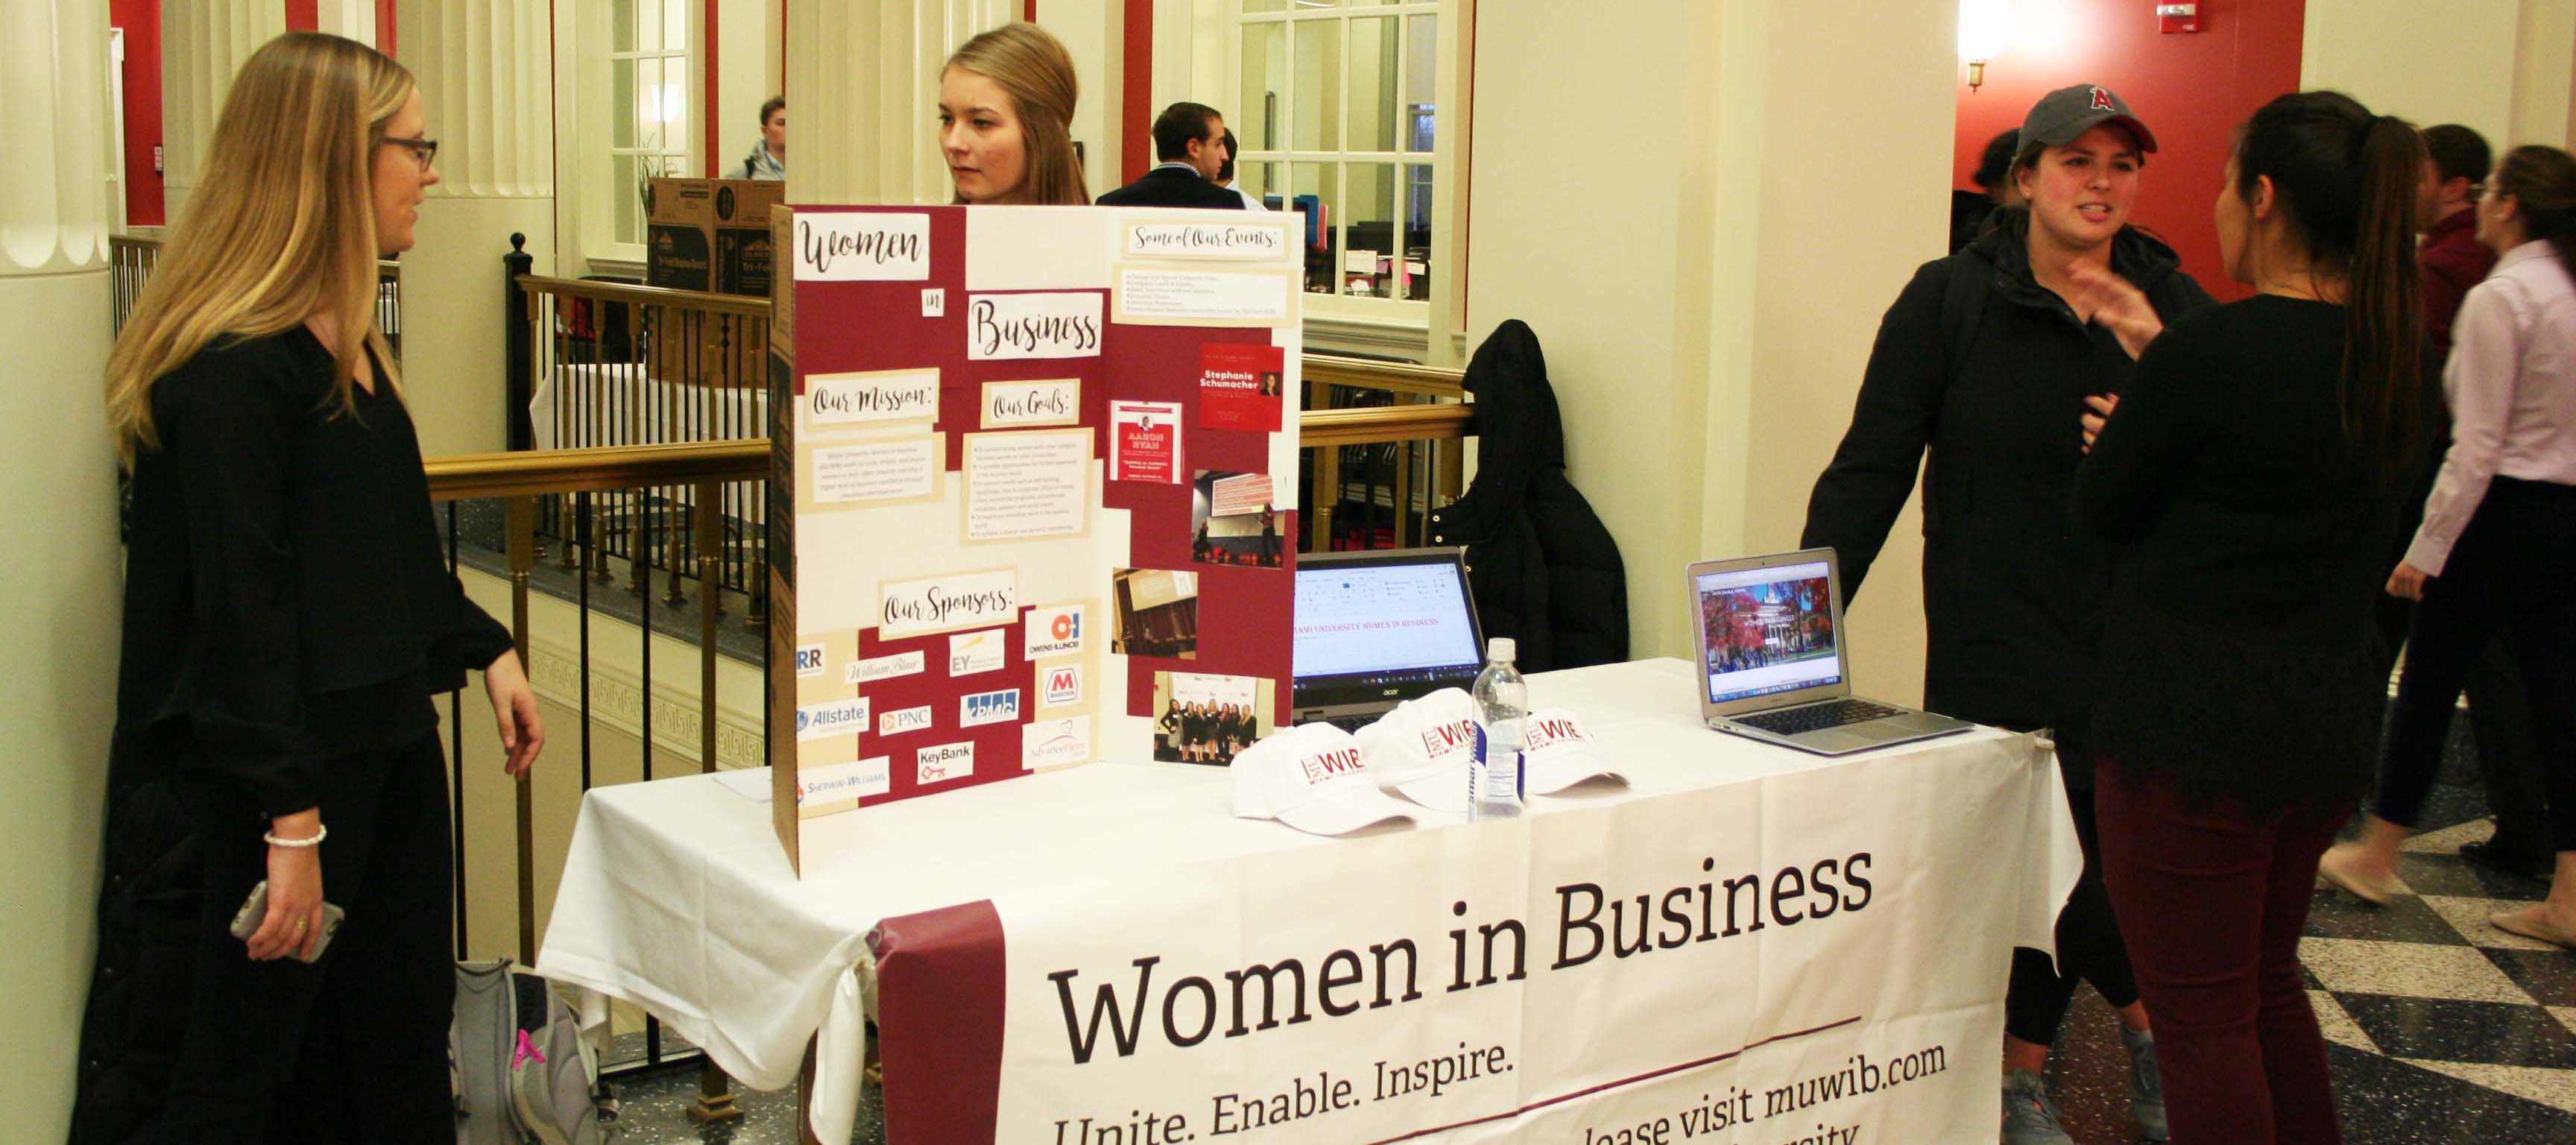 Women in Business table at Meet the B-Orgs